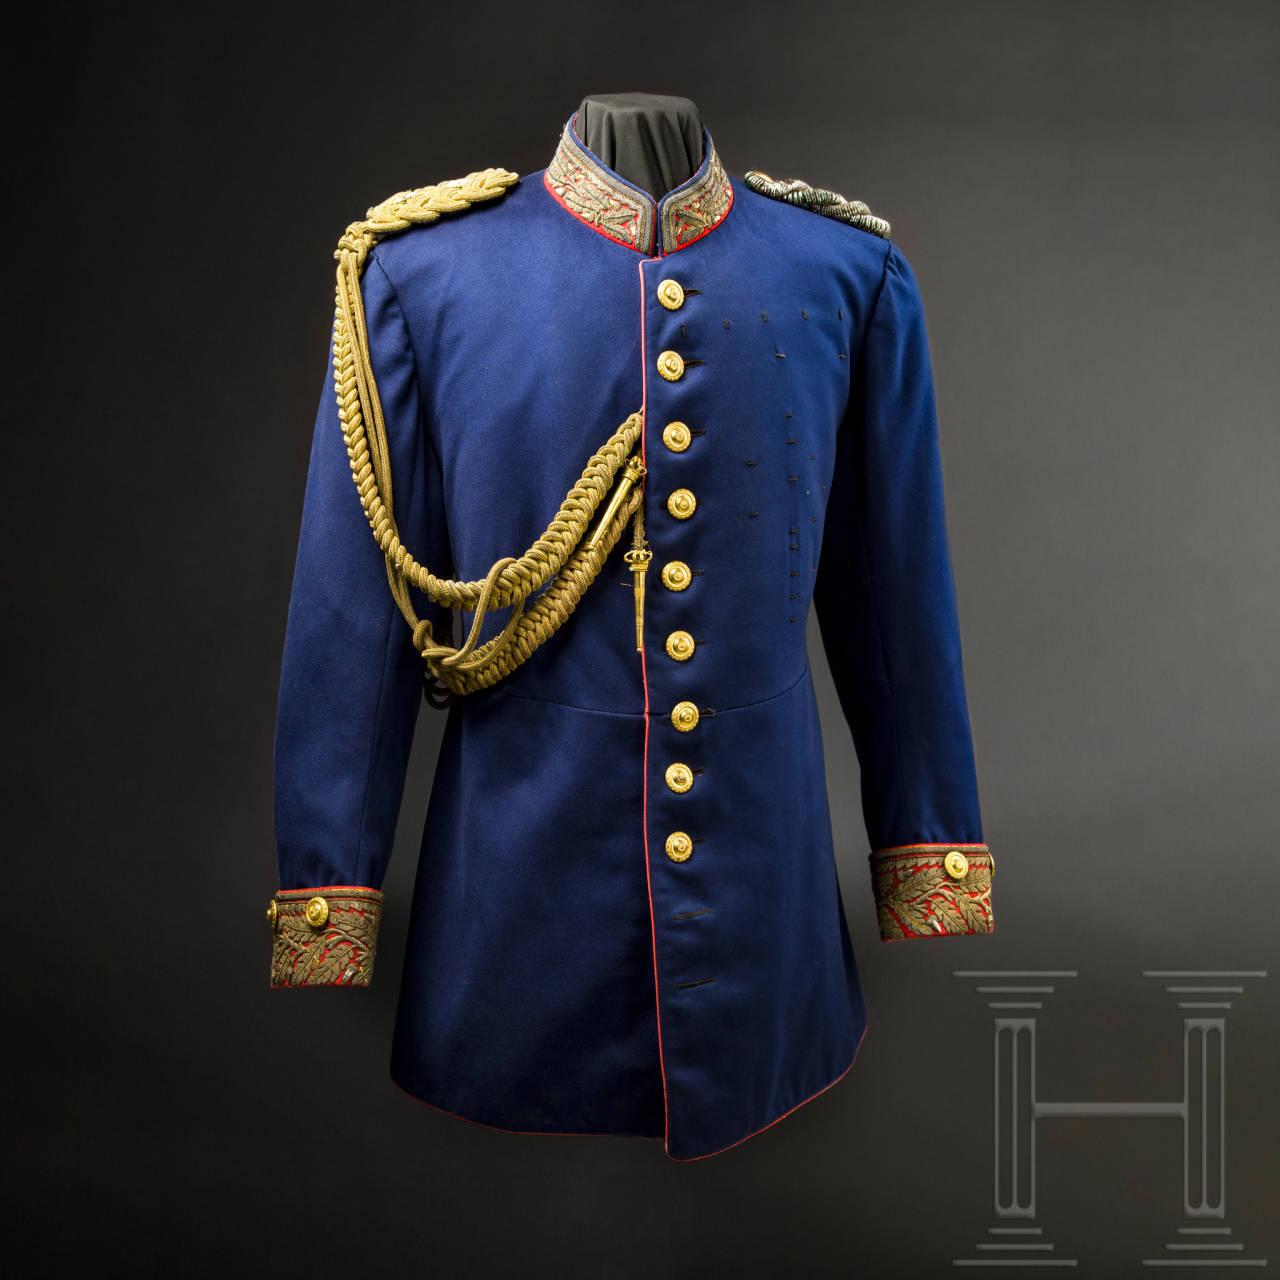 Ernst I, Duke of Saxe-Altenburg (1826 - 1908) - a uniform as Saxon general, circa 1905